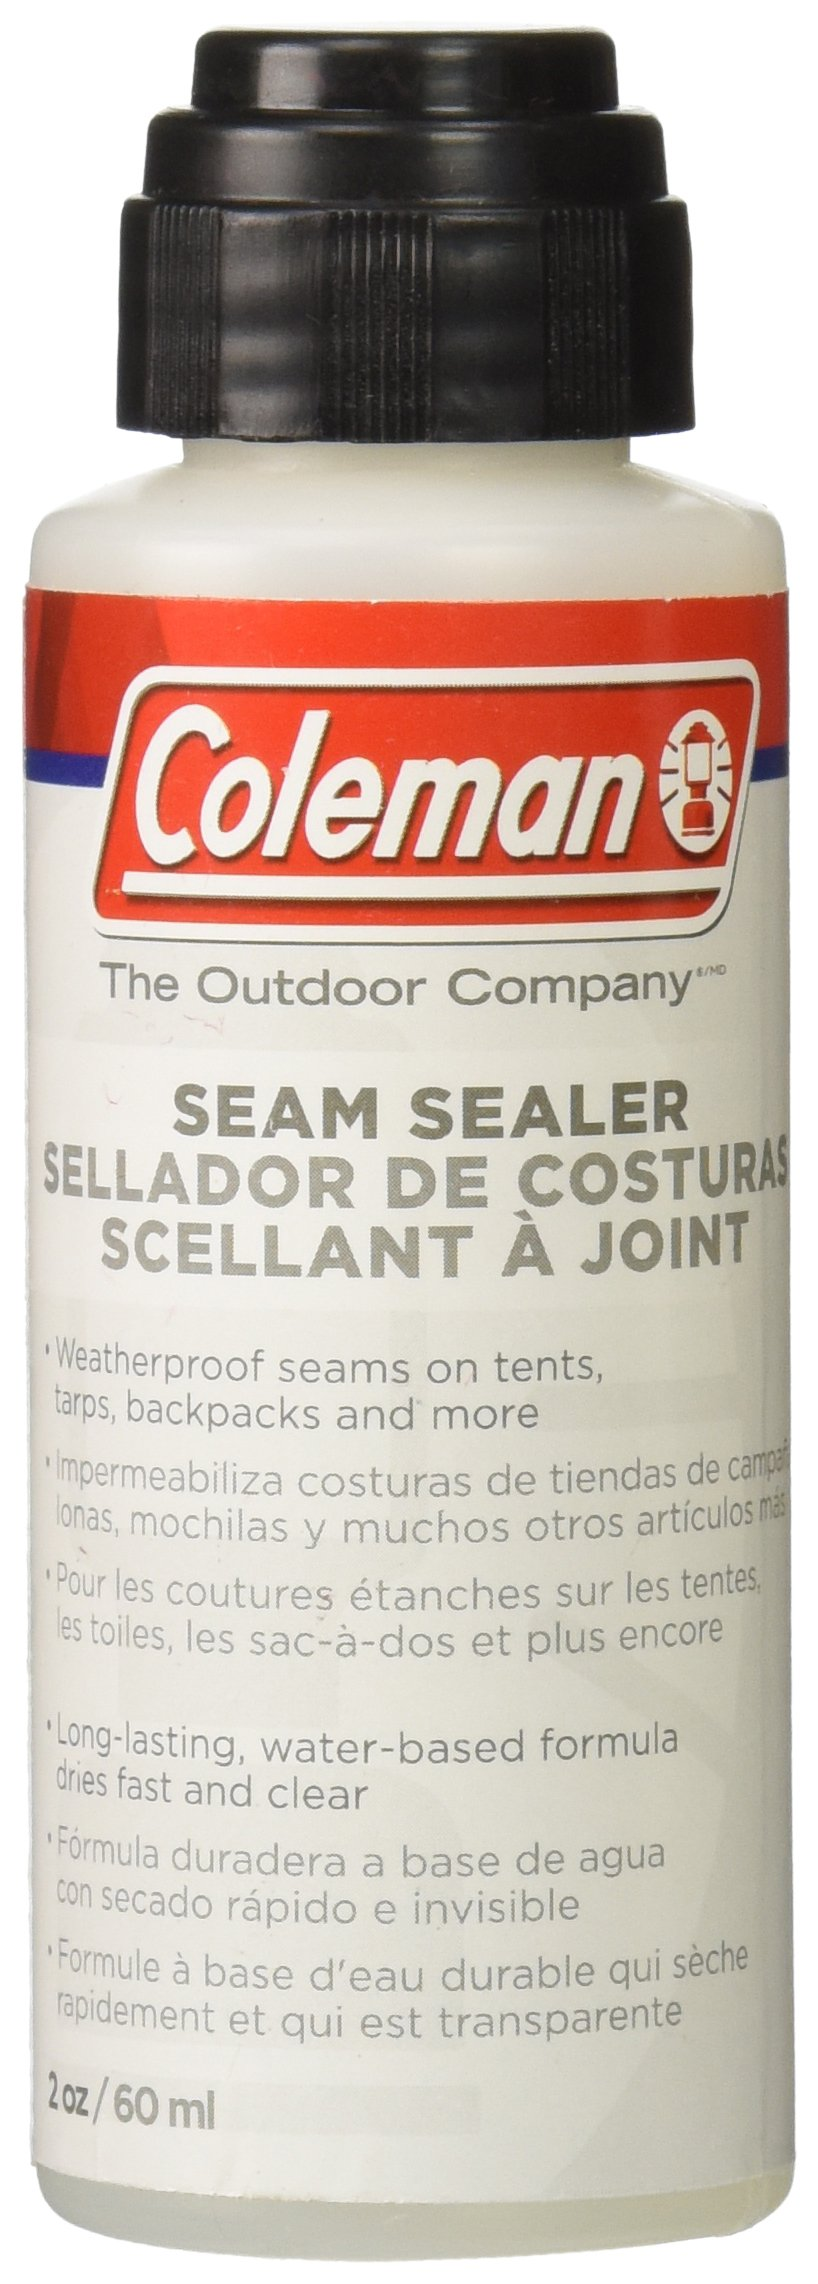 how-to-waterproof-a-tent-SEAM-sealer